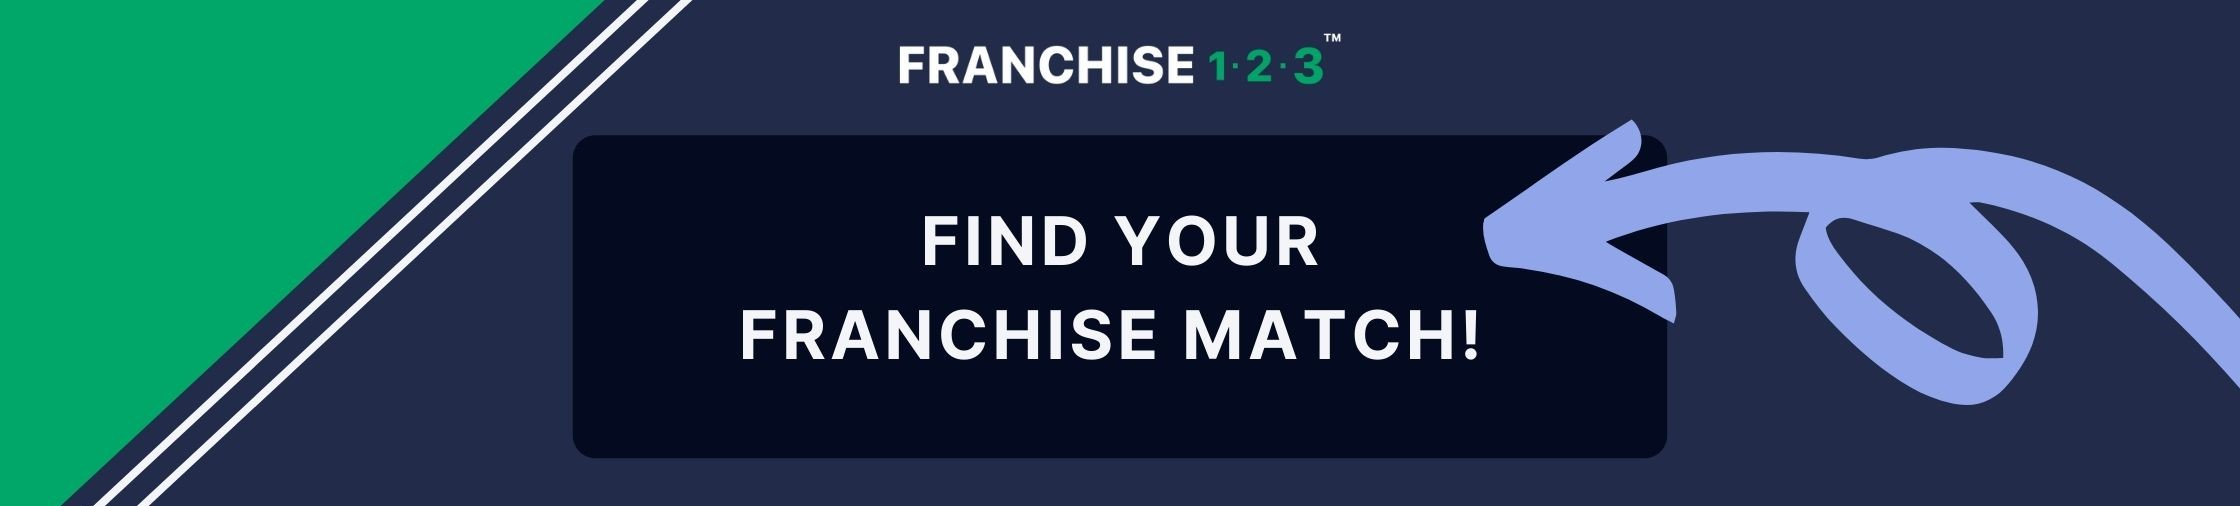 Find your franchise match!